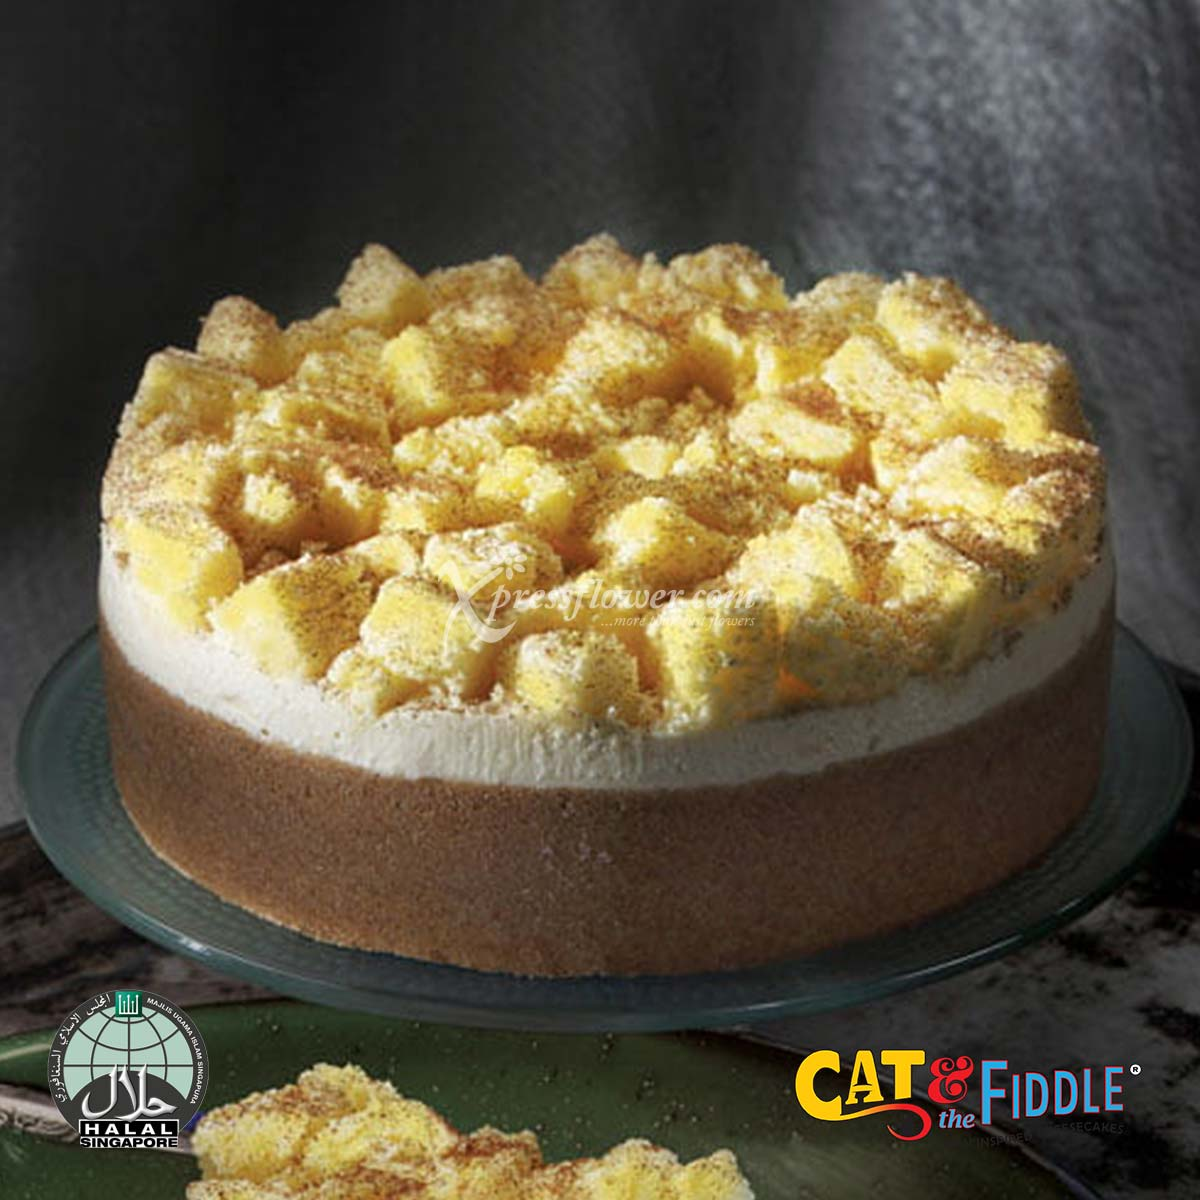 King Cat of the Mountain Durian Cheesecake - Mao Shan Wang Asian-inspired (Cat & The Fiddle)